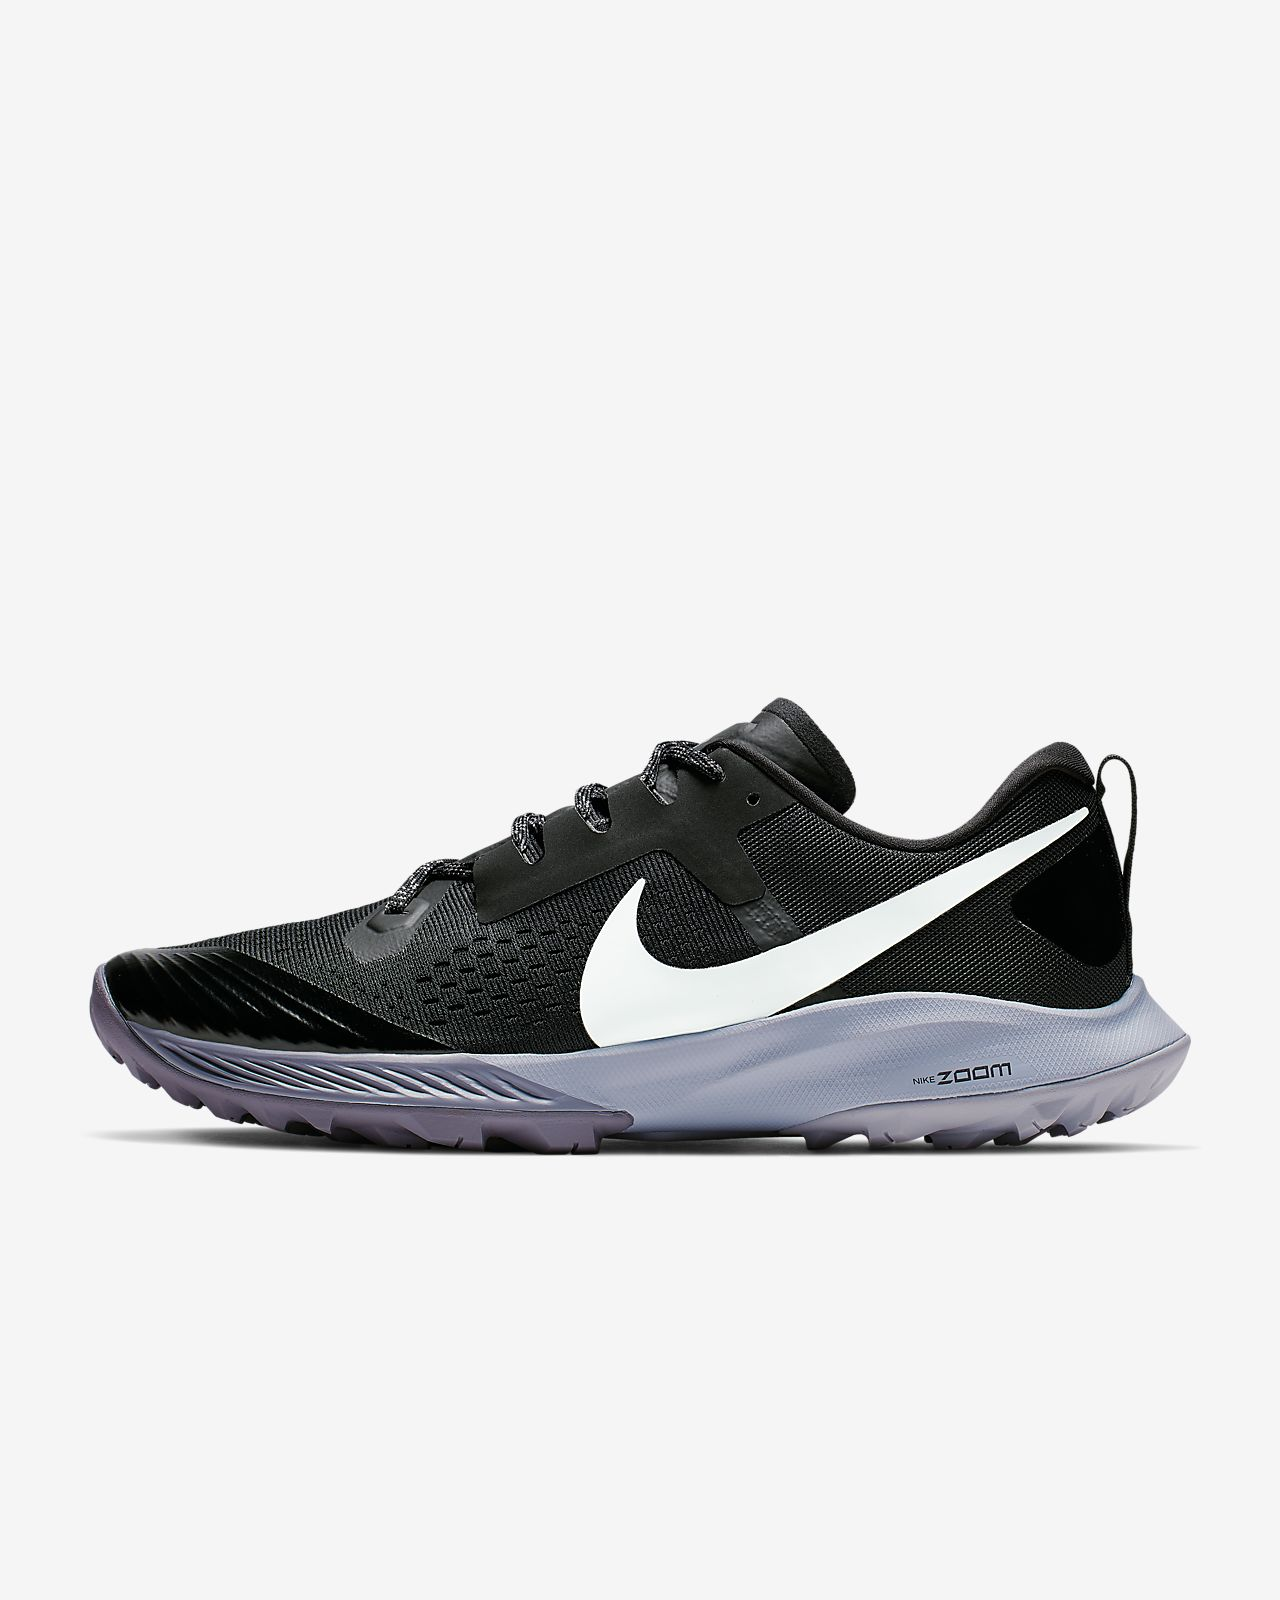 cute hot products buy good Nike Air Zoom Terra Kiger 5 Men's Trail Running Shoe. Nike AT